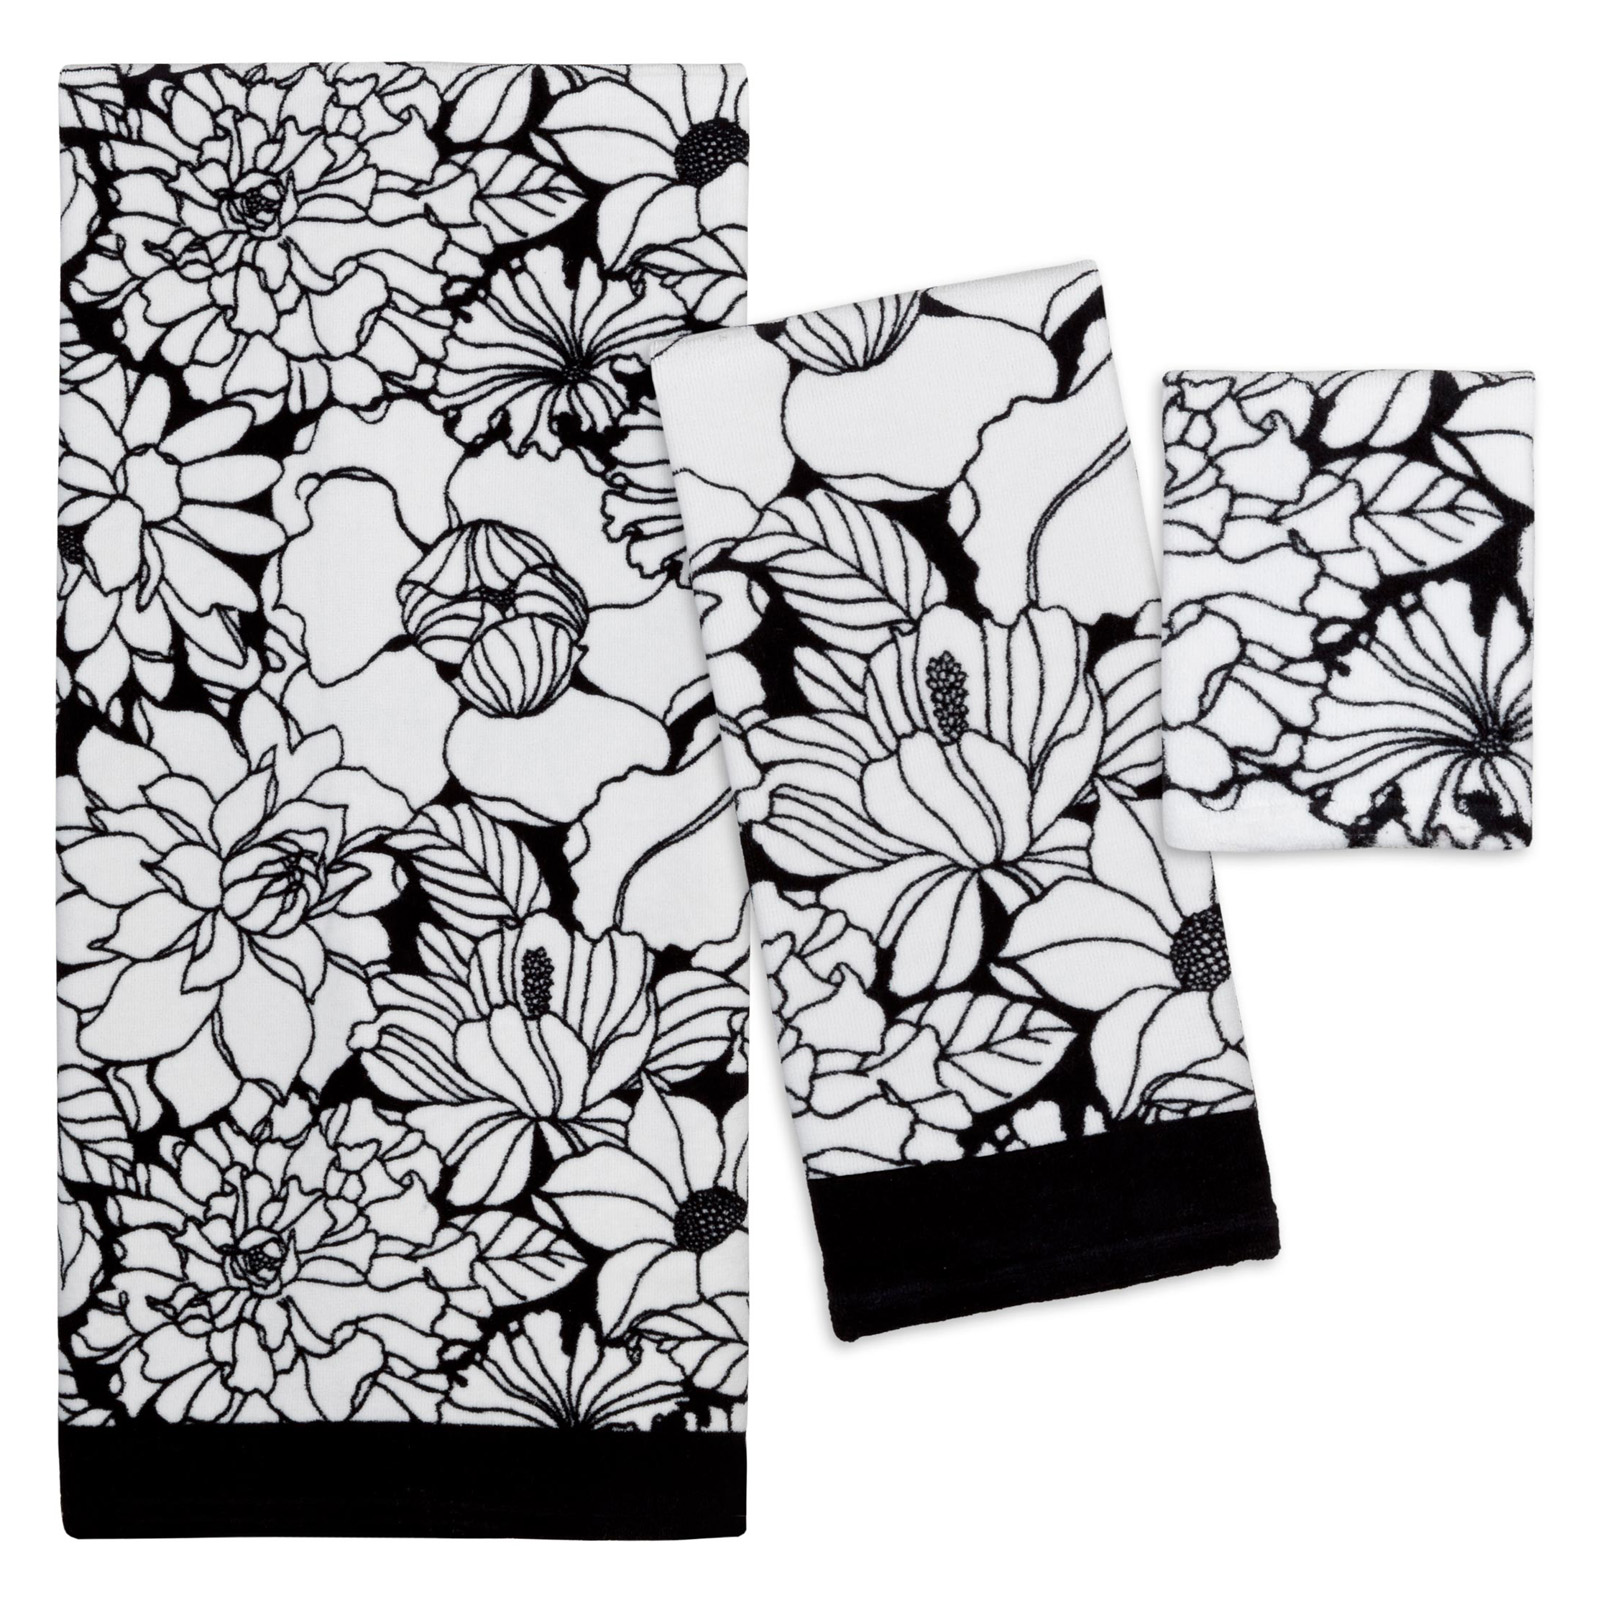 Black And White Bathroom Towel Sets: Creative Bath Black And White 100% Cotton 3 Piece Bath